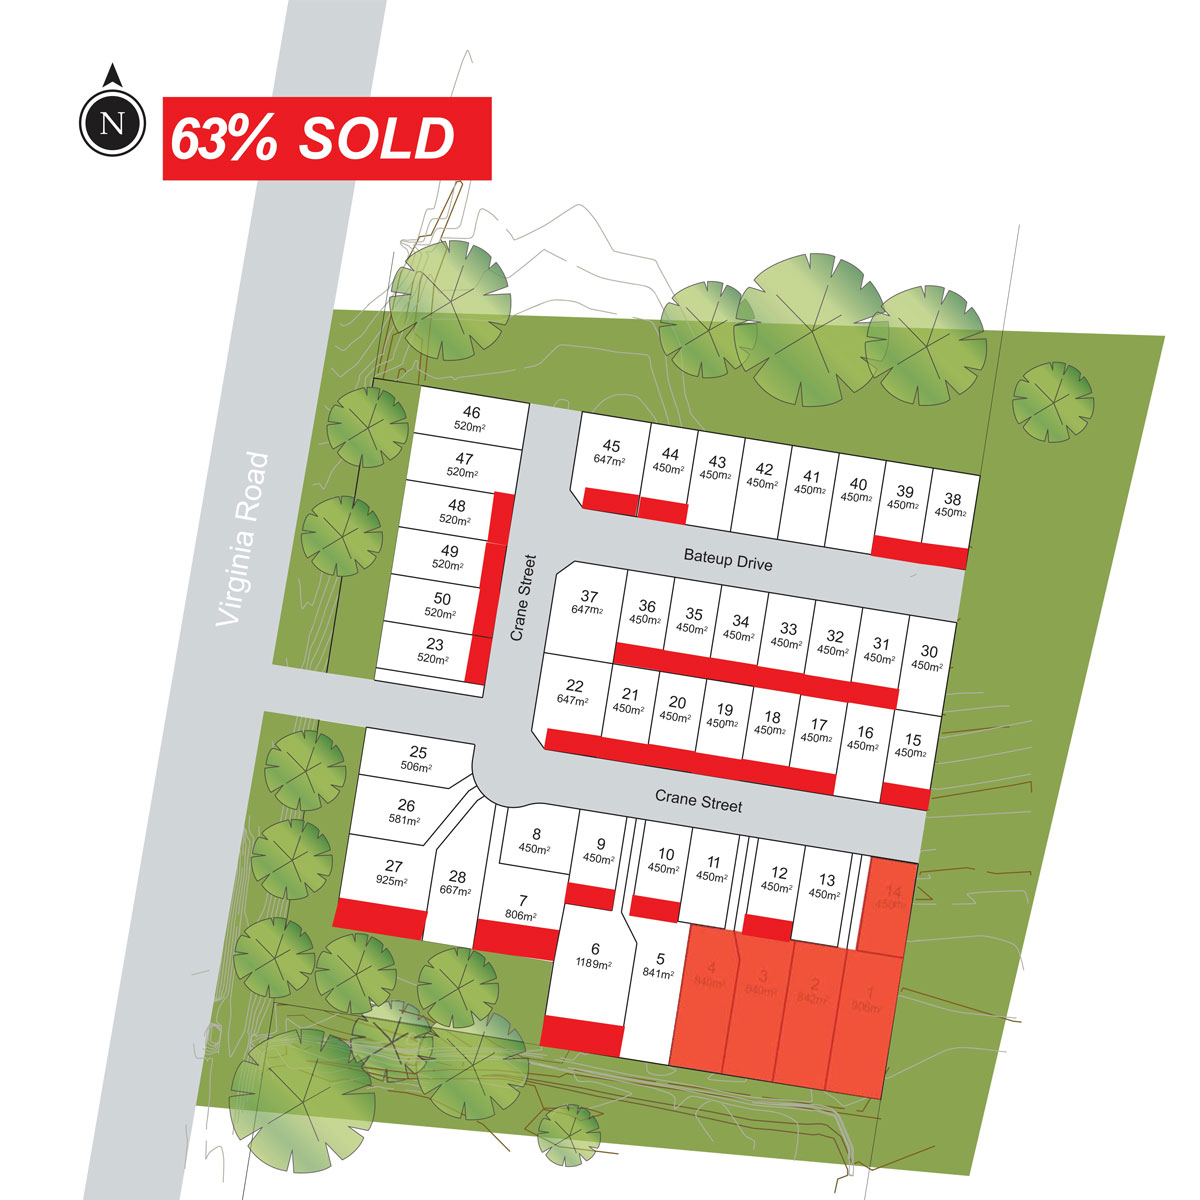 63-percent-sold-the-vale